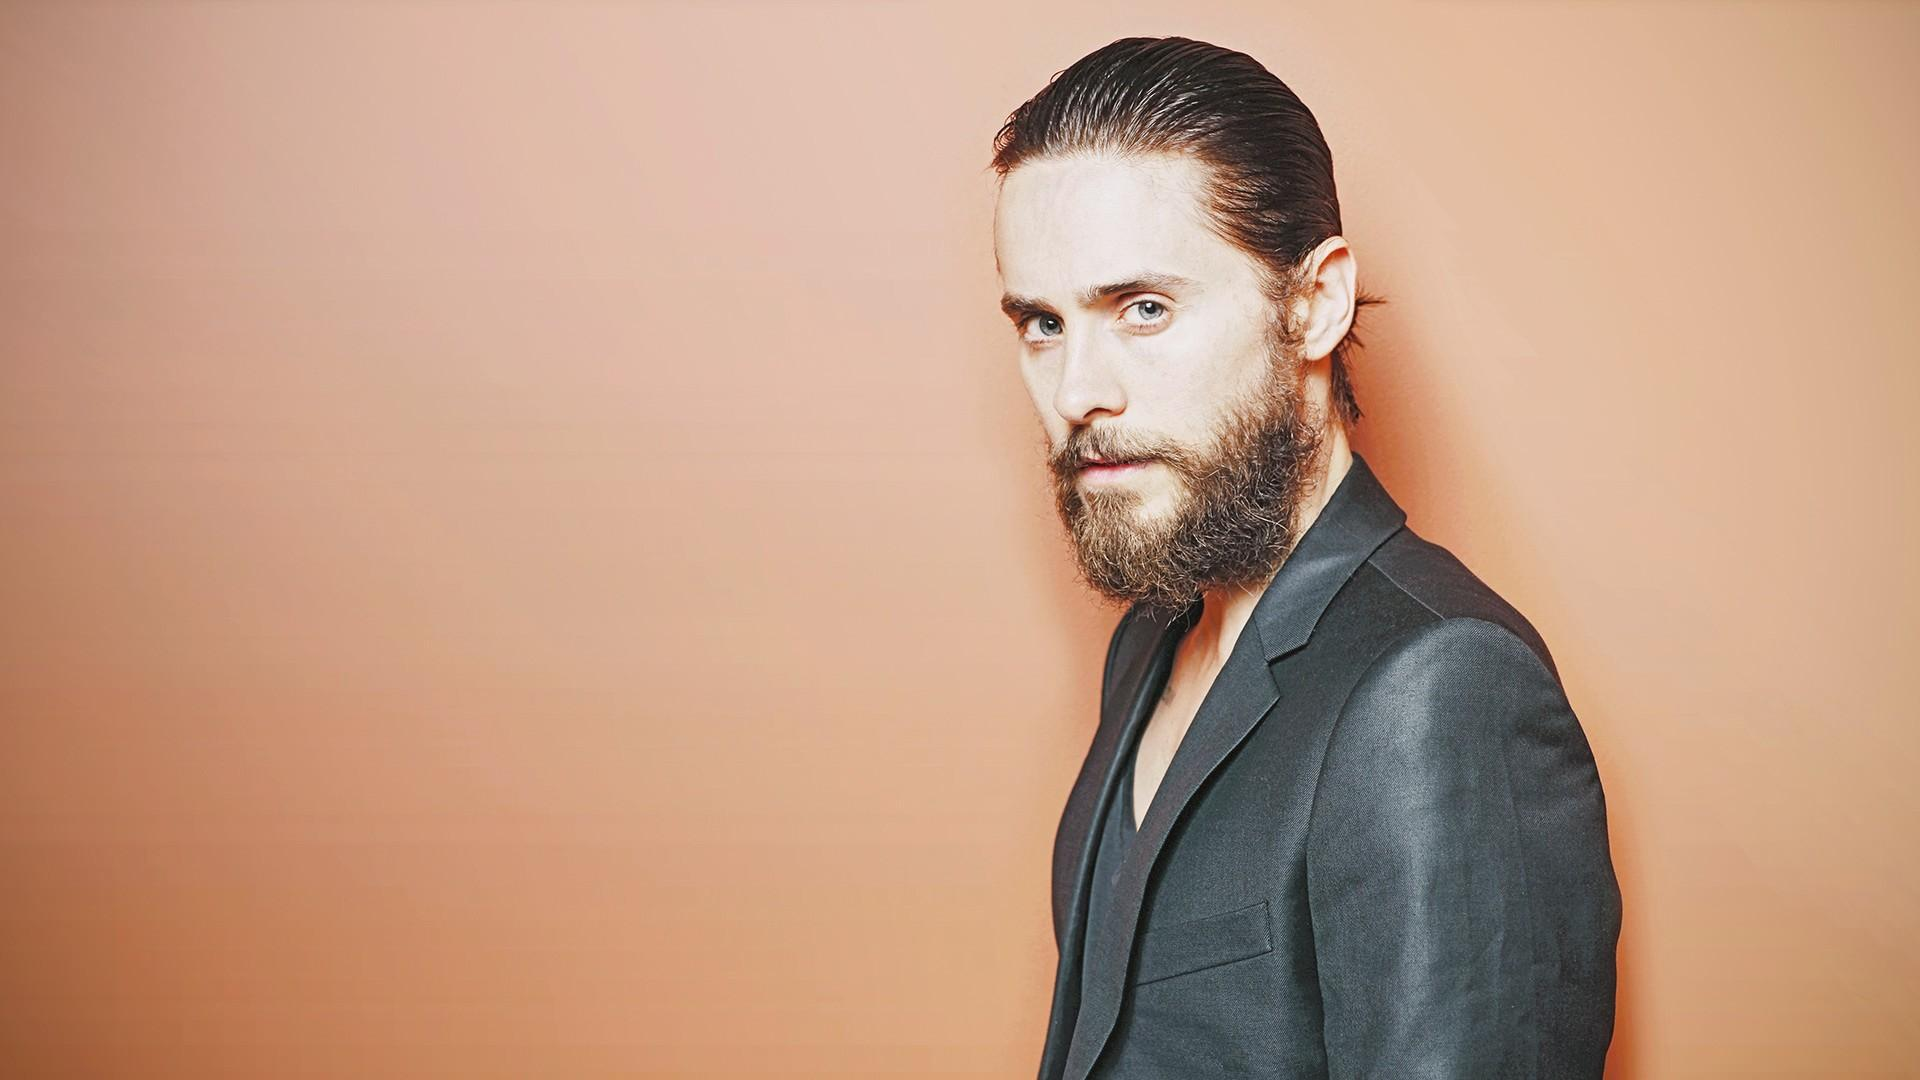 jared leto actor wallpaper 68643